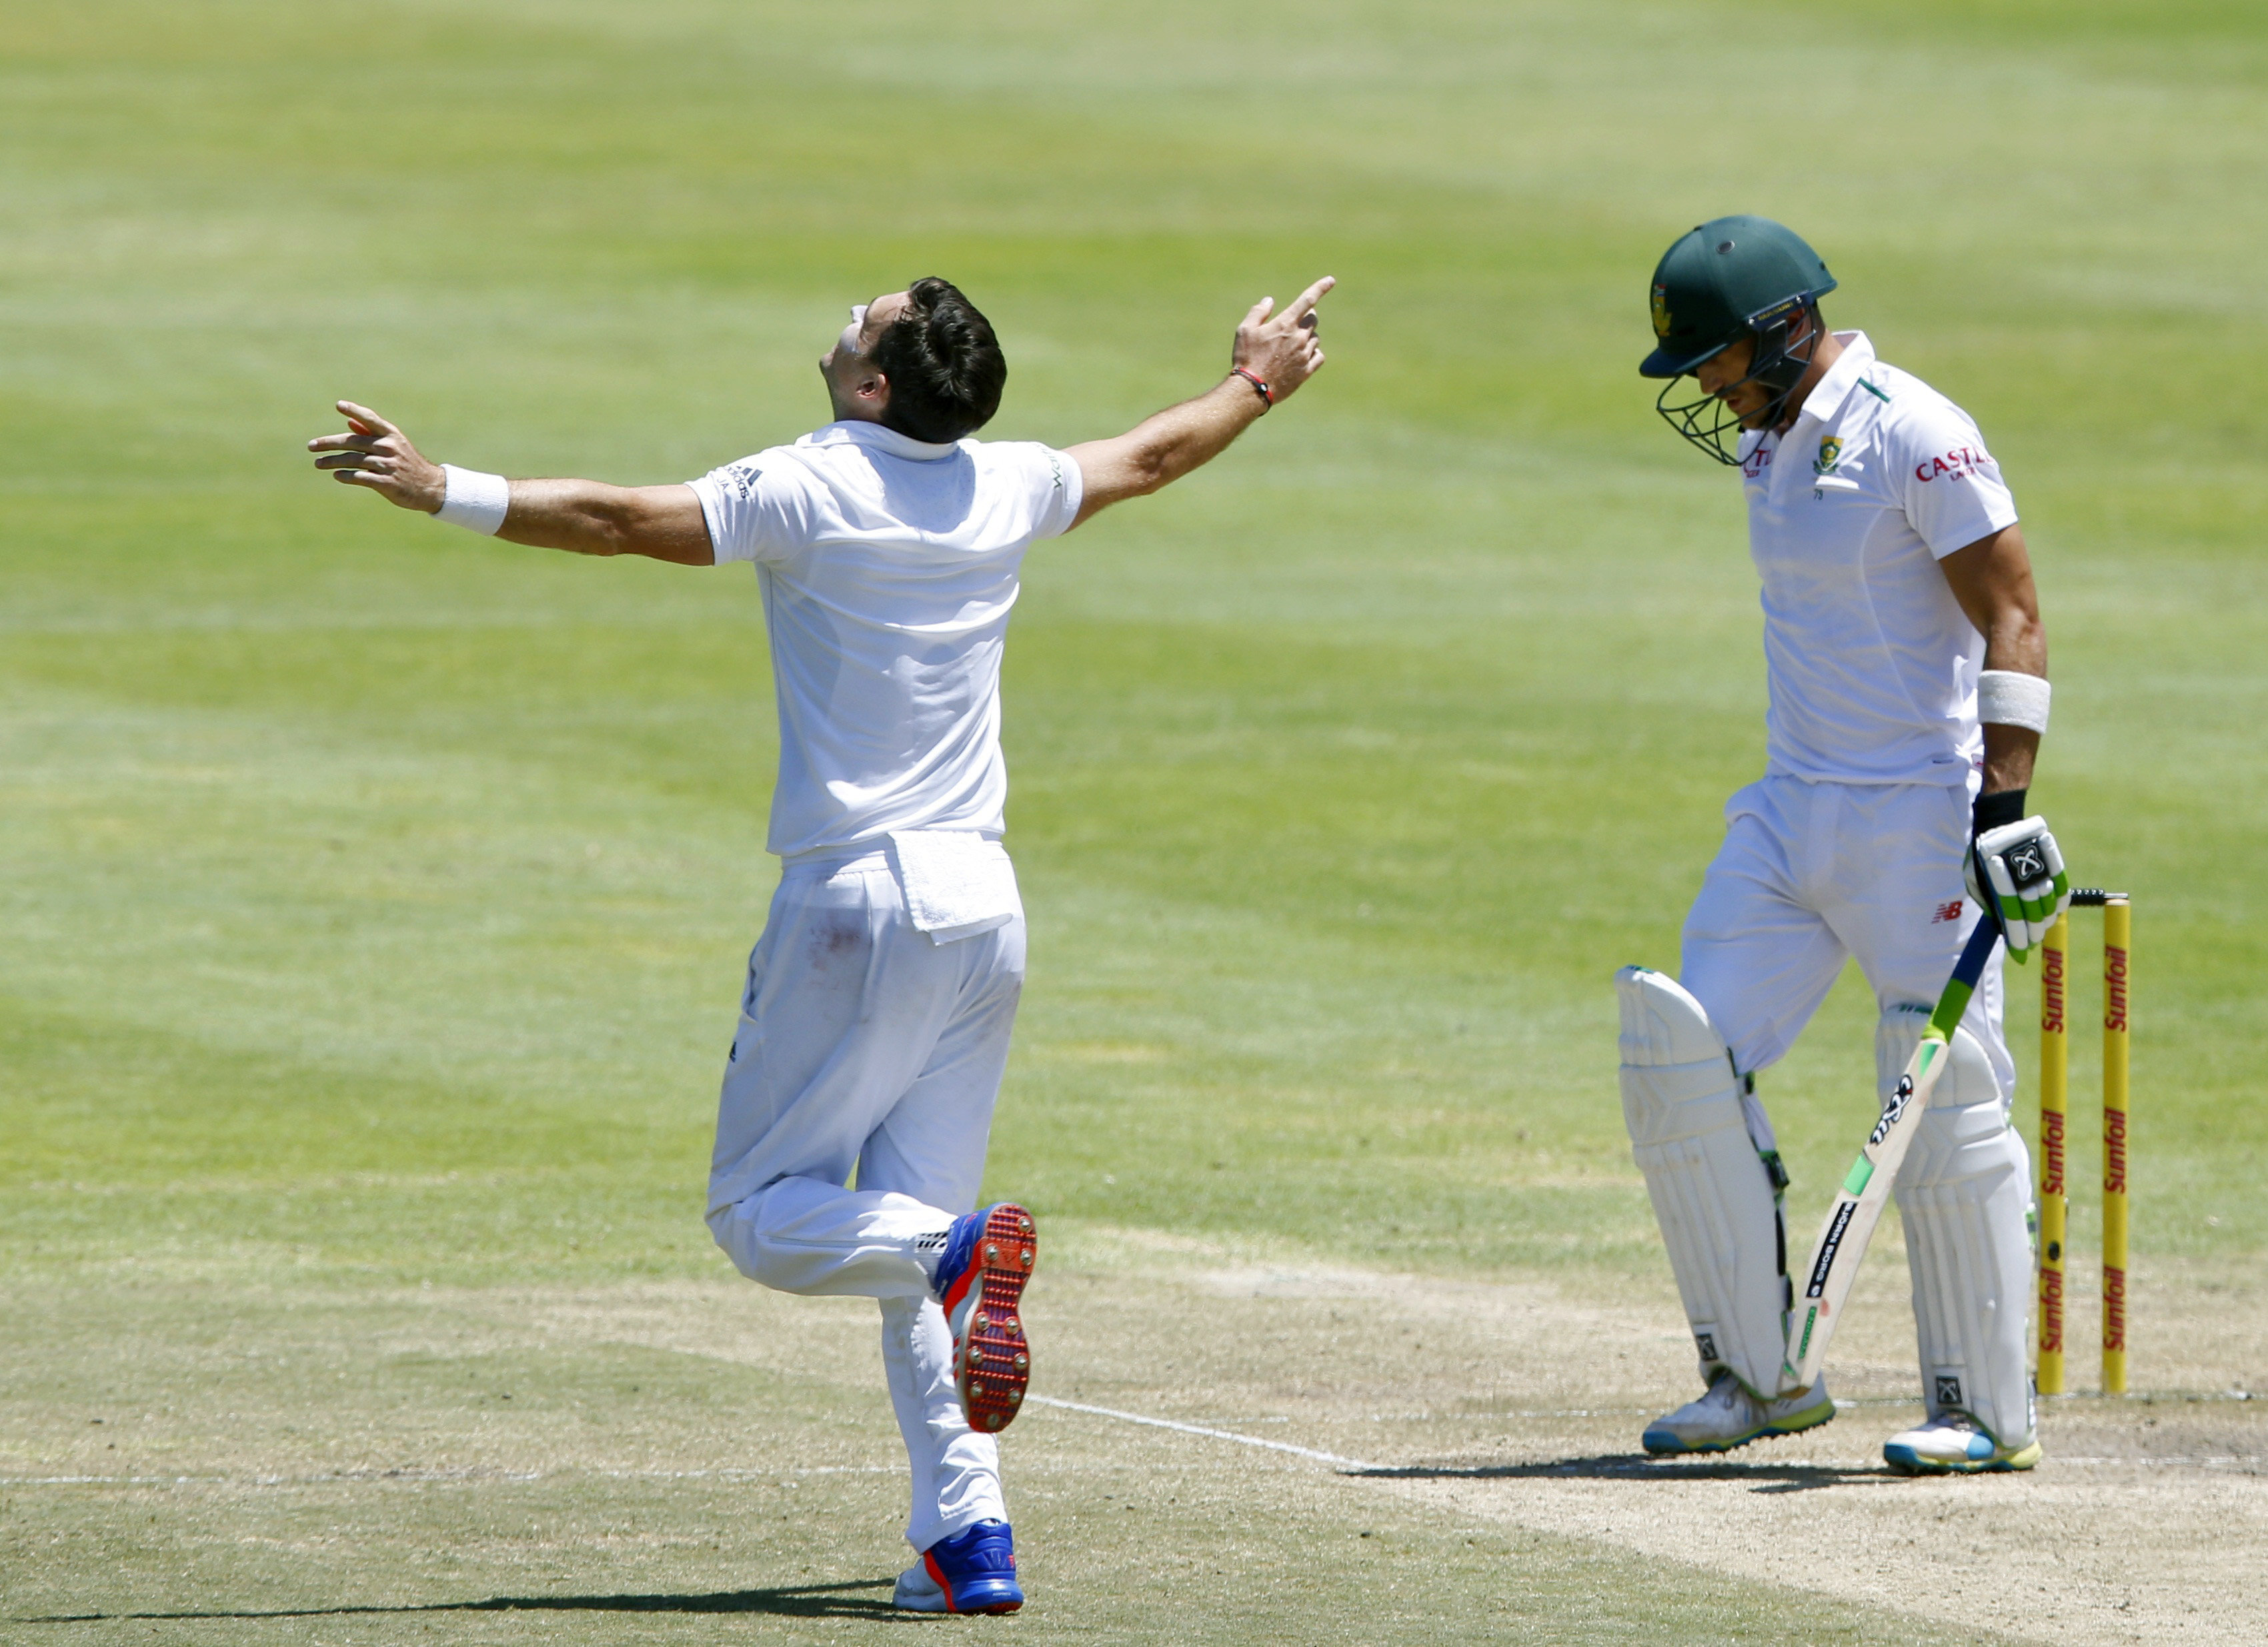 England's James Anderson celebrates the wicket of South Africa's Faf du Plessis during the second cricket test match in Cape Town, South Africa, January 5, 2016. Photo: Reuters